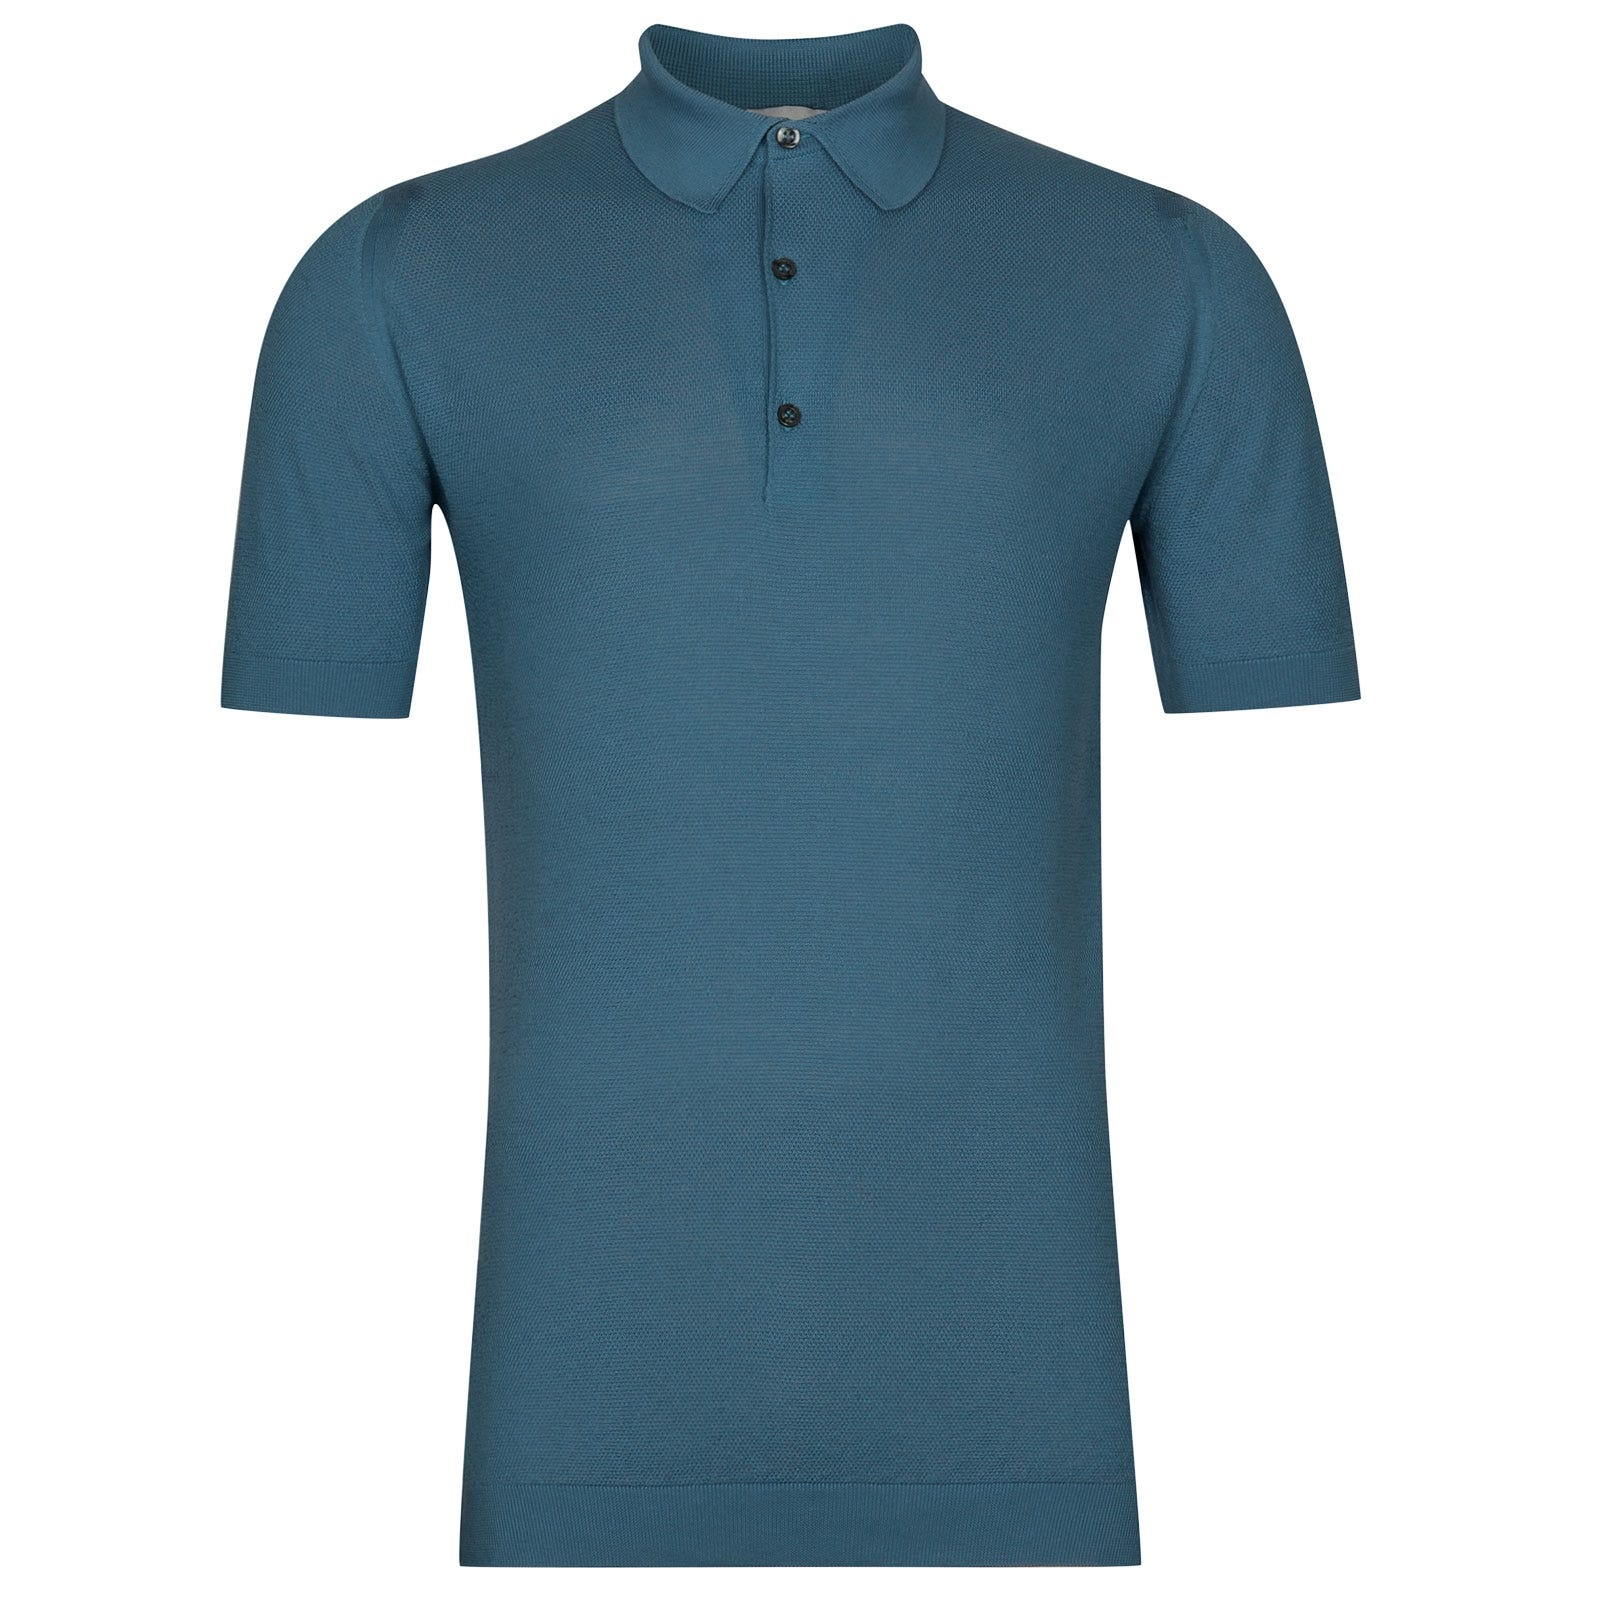 John Smedley Roth Sea Island Cotton Shirt in Bias Blue-XL